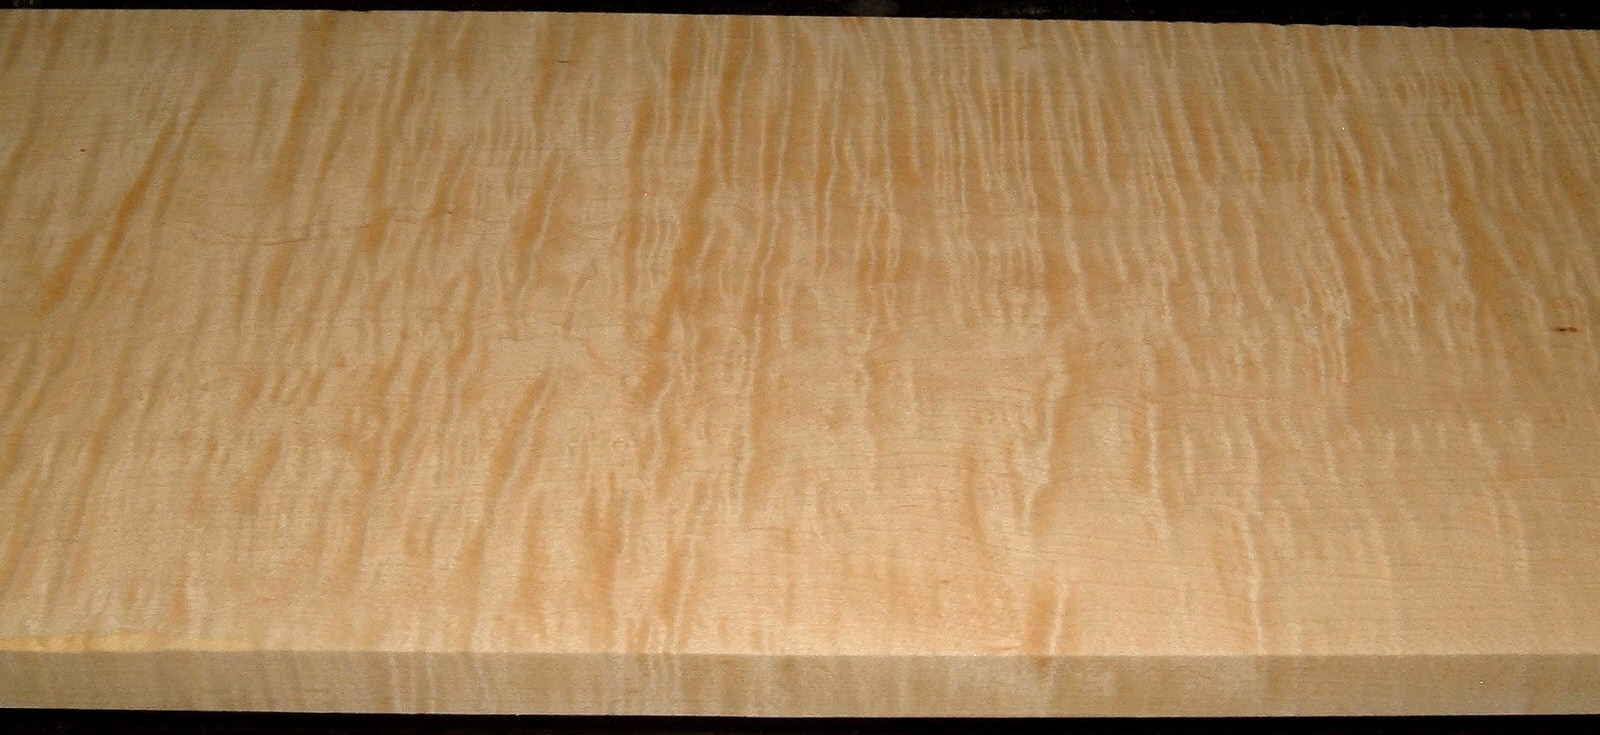 HM2001-26, +7/8x9-1/2x42, Curly Tiger Hard Maple